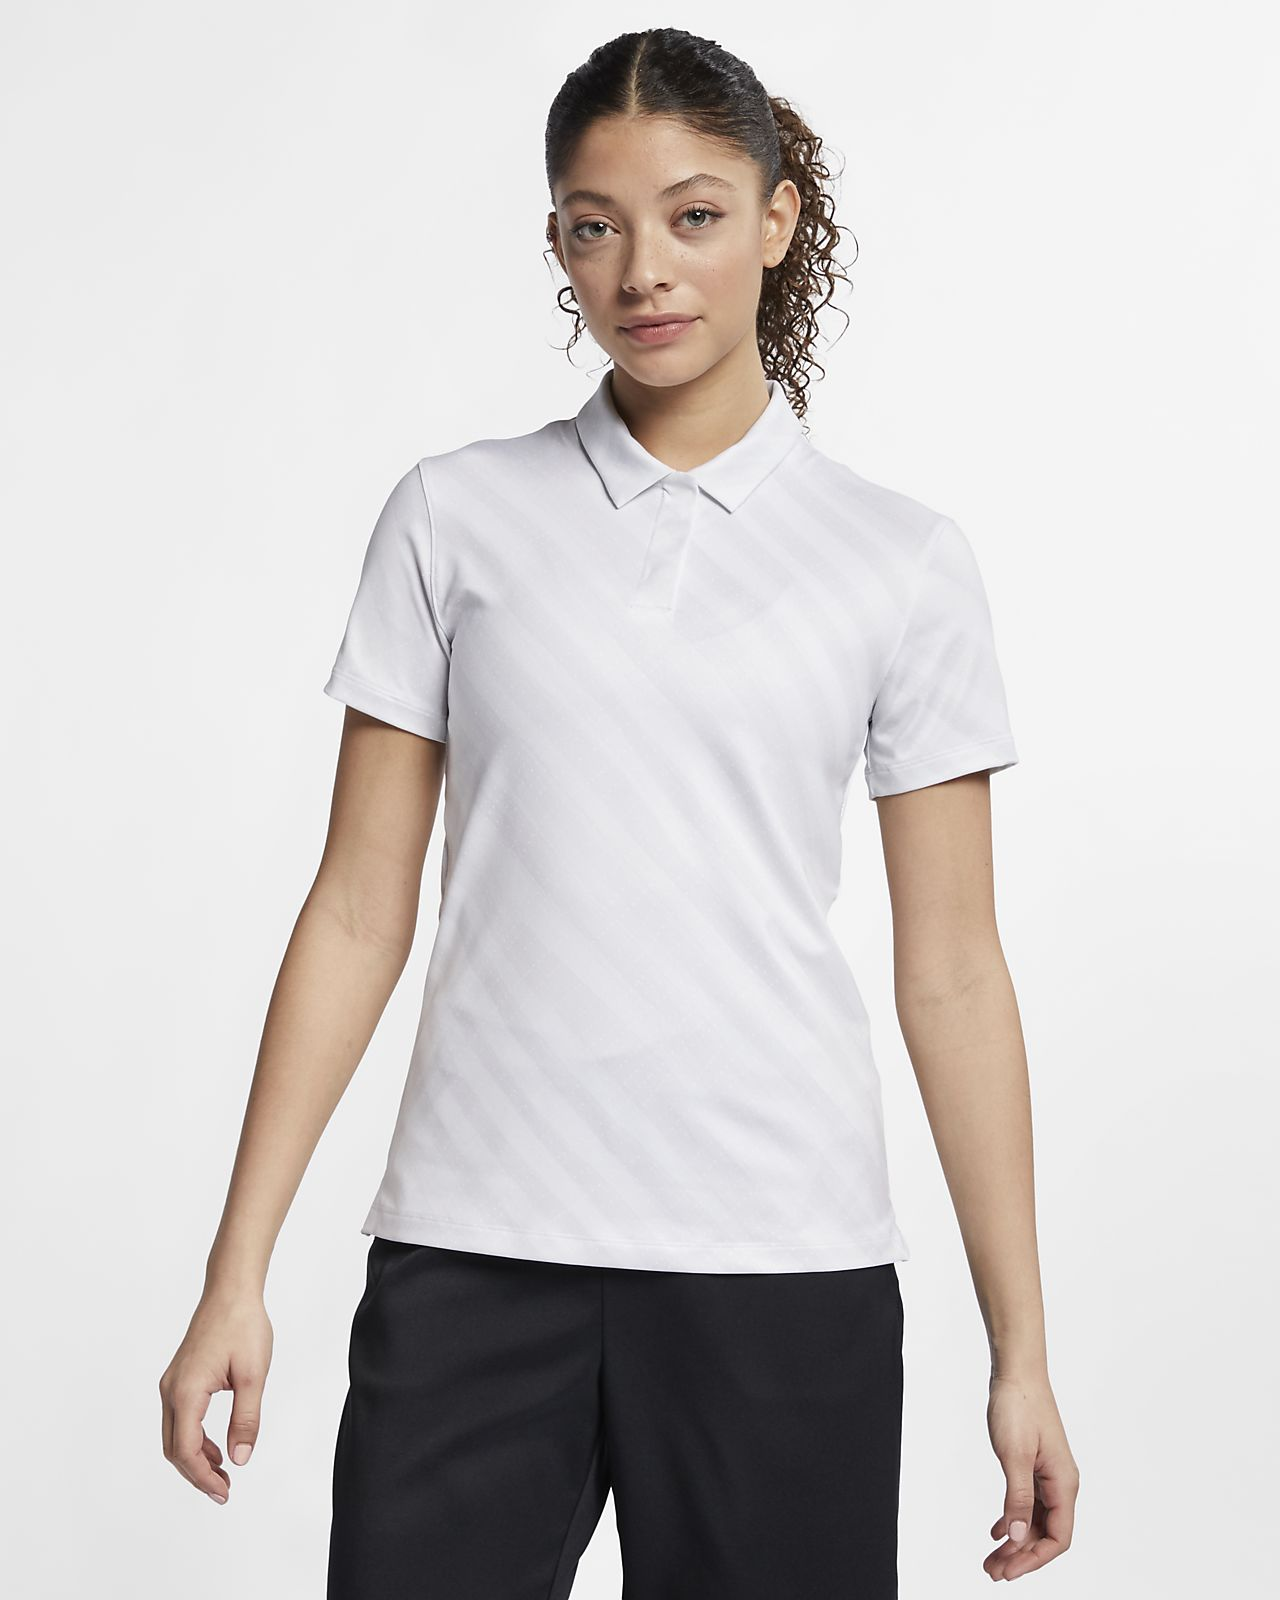 Polo de golf estampada para mujer Nike Dri-FIT UV